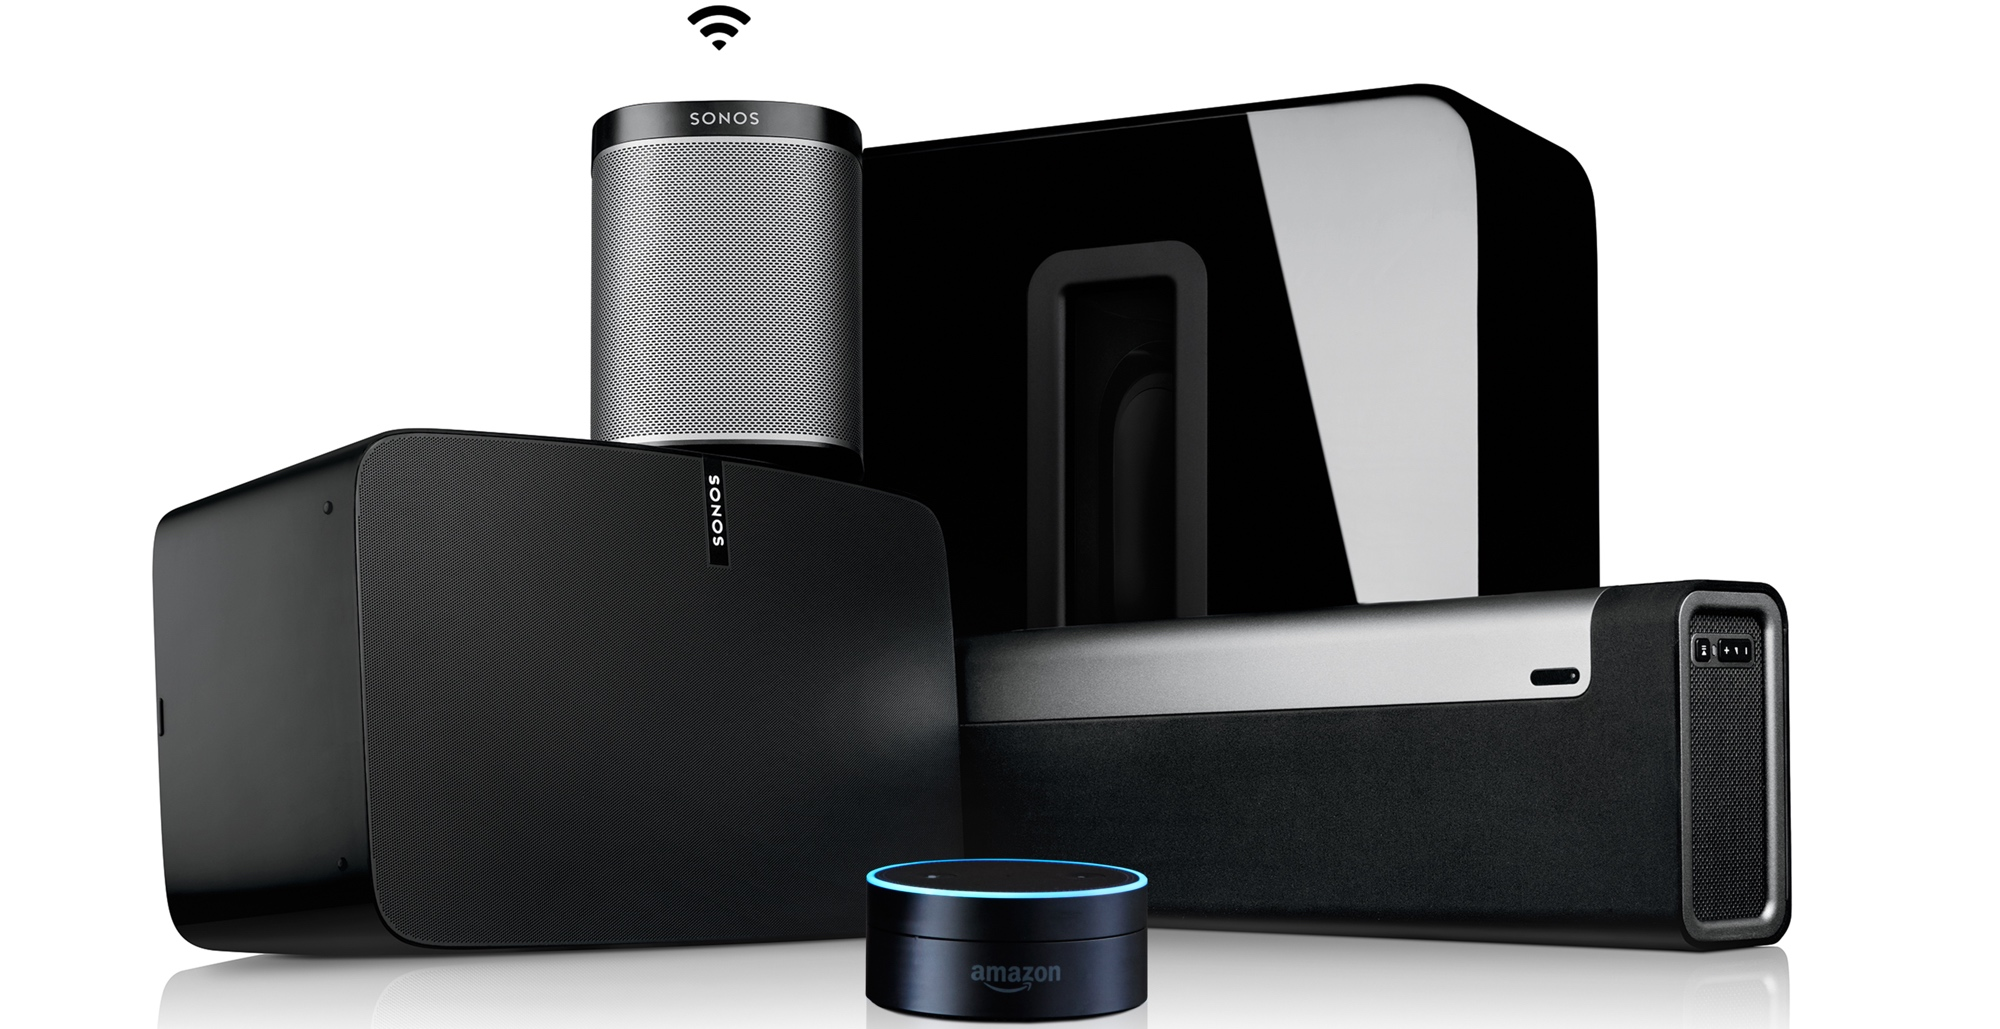 pile of sonos speakers with Amazon Alexa Dot front and center